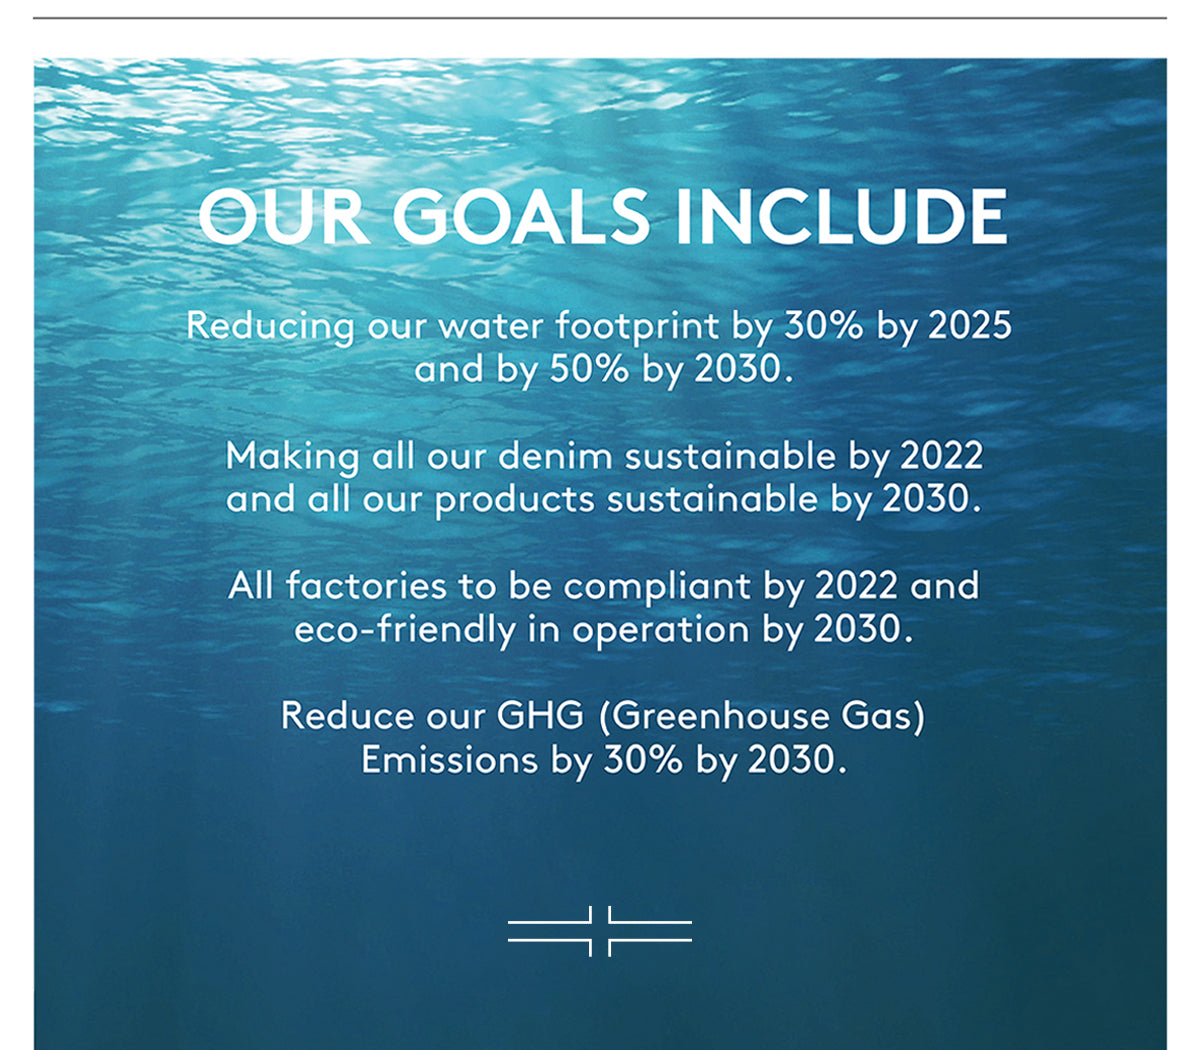 OUR GOALS INCLUDE Reducing our water footprint by 30% by 2025 and by 50% by 2030. Making all our denim sustainable by 2022 and all our products sustainable by 2030. All factories to be compliant by 2022 and eco-friendly in operation by 2030. Reduce our GHG (Greenhouse Gas) Emissions by 30% by 2030.